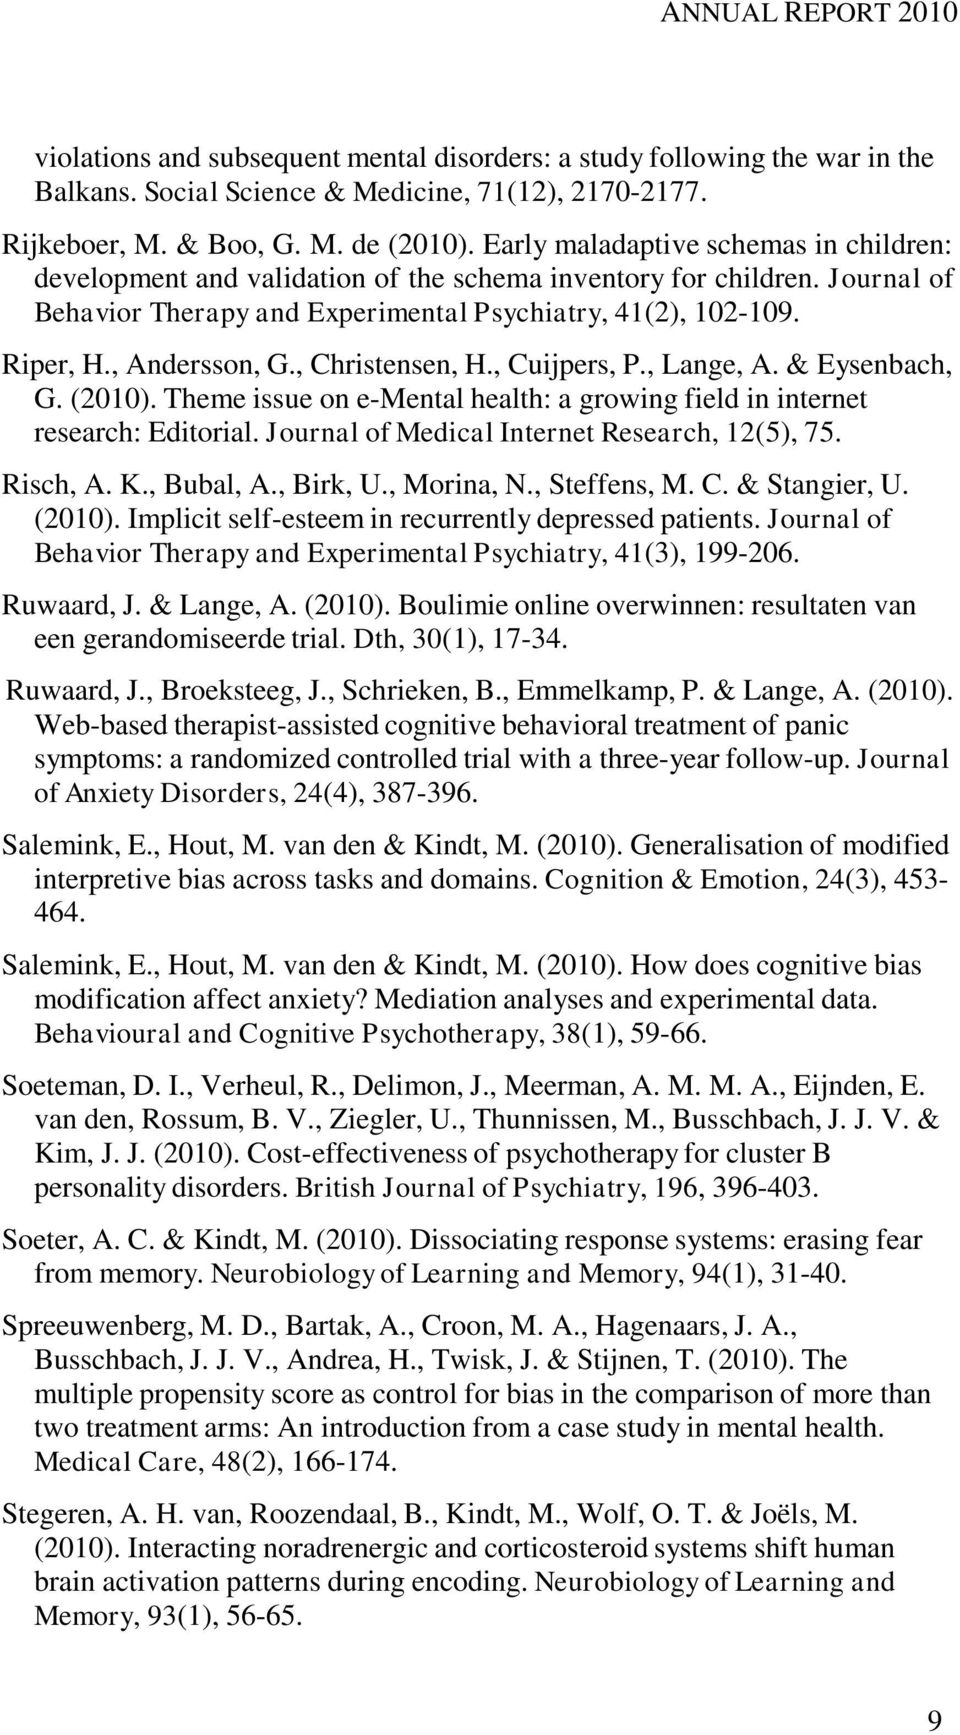 , Andersson, G., Christensen, H., Cuijpers, P., Lange, A. & Eysenbach, G. (2010). Theme issue on e-mental health: a growing field in internet research: Editorial.